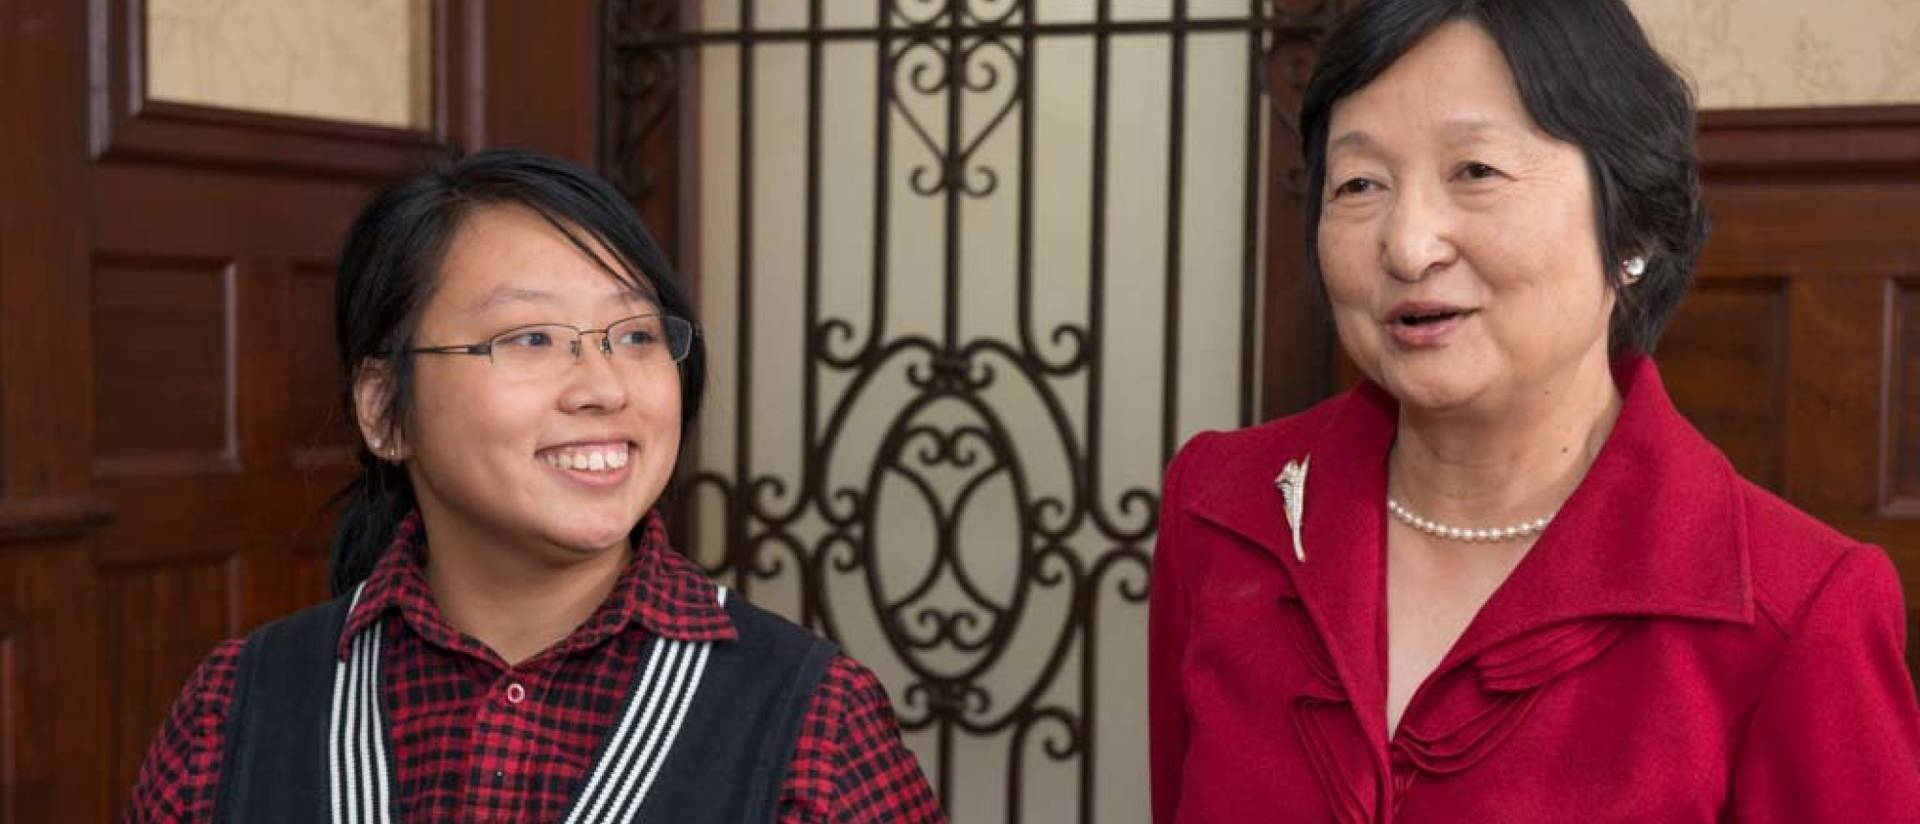 Maureen Lau Scholarship recipient  Hengzhou Liu and Grace Lau, who established the scholarship in memory of her sister.